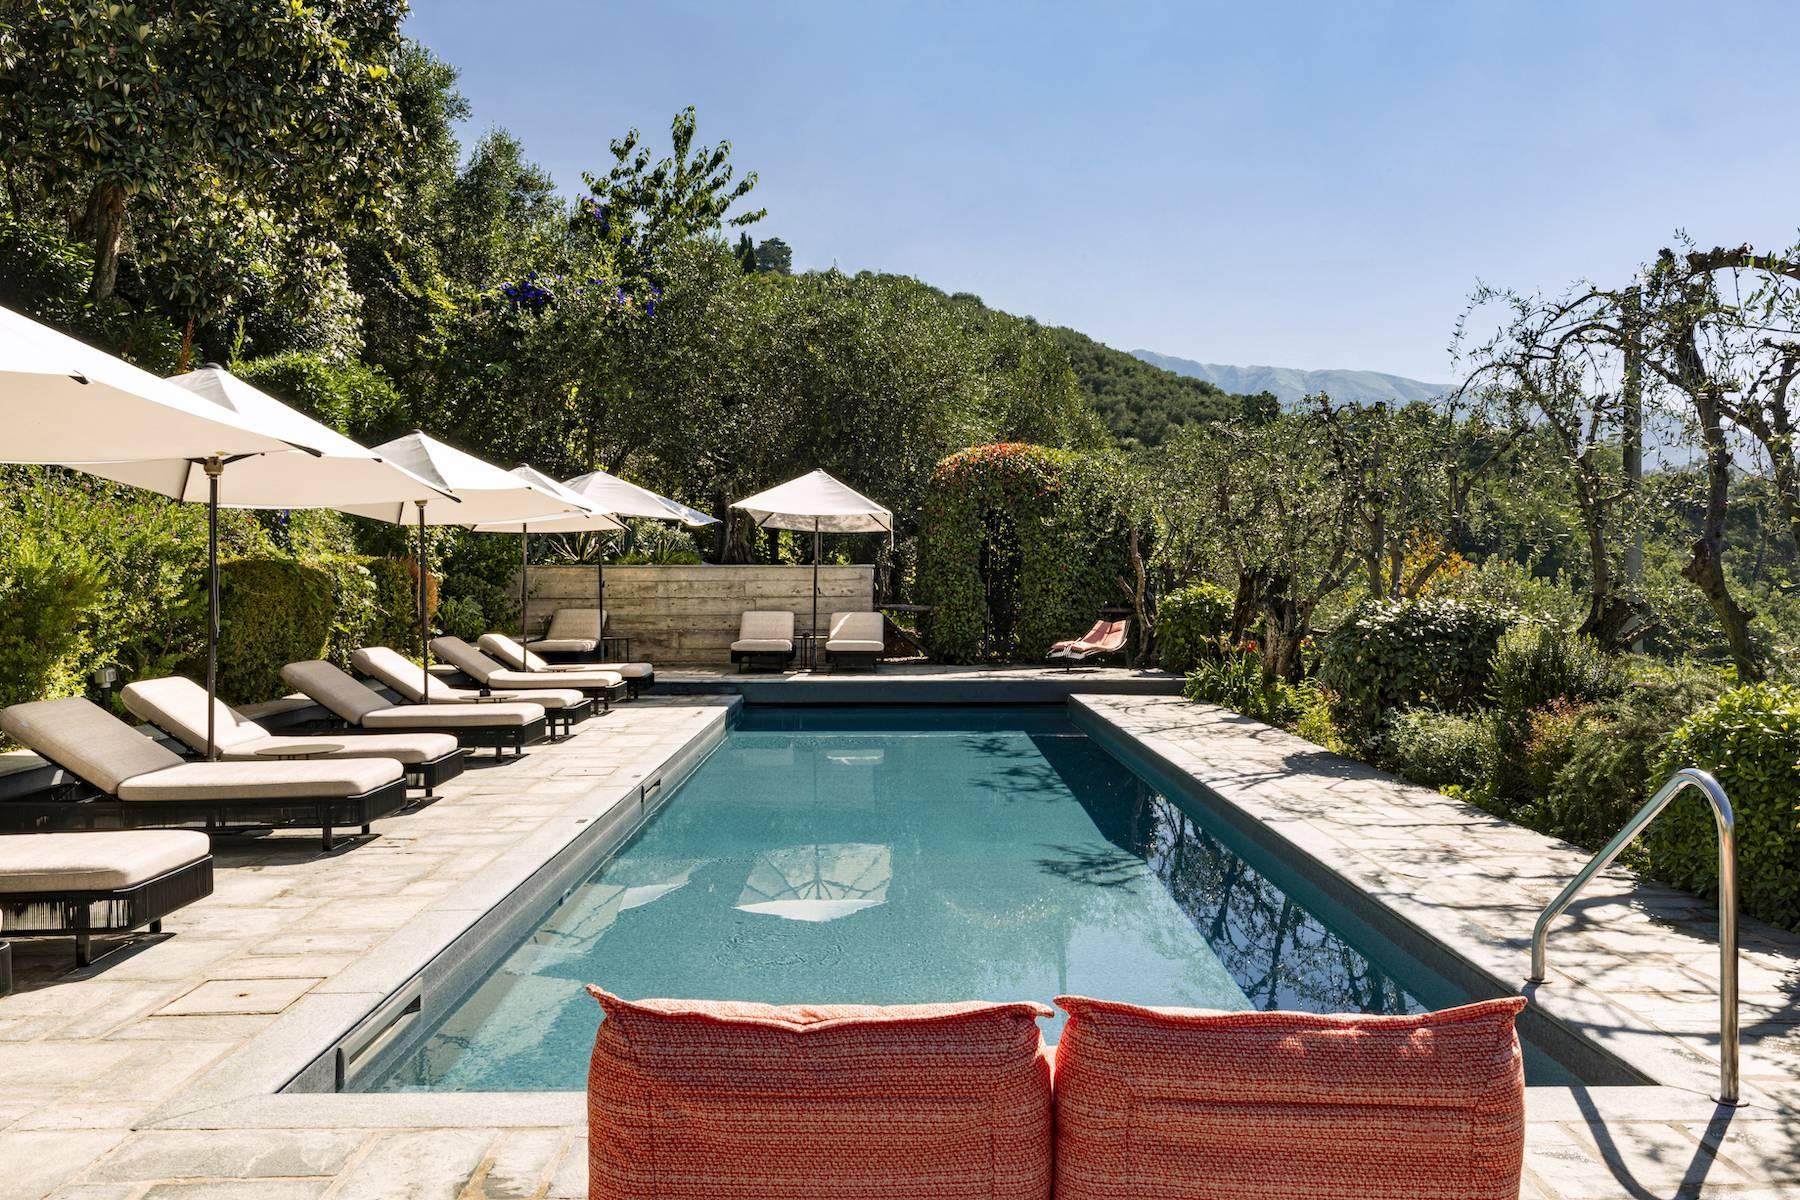 Luxury Boutique Hotel on the hills around Lucca - 5